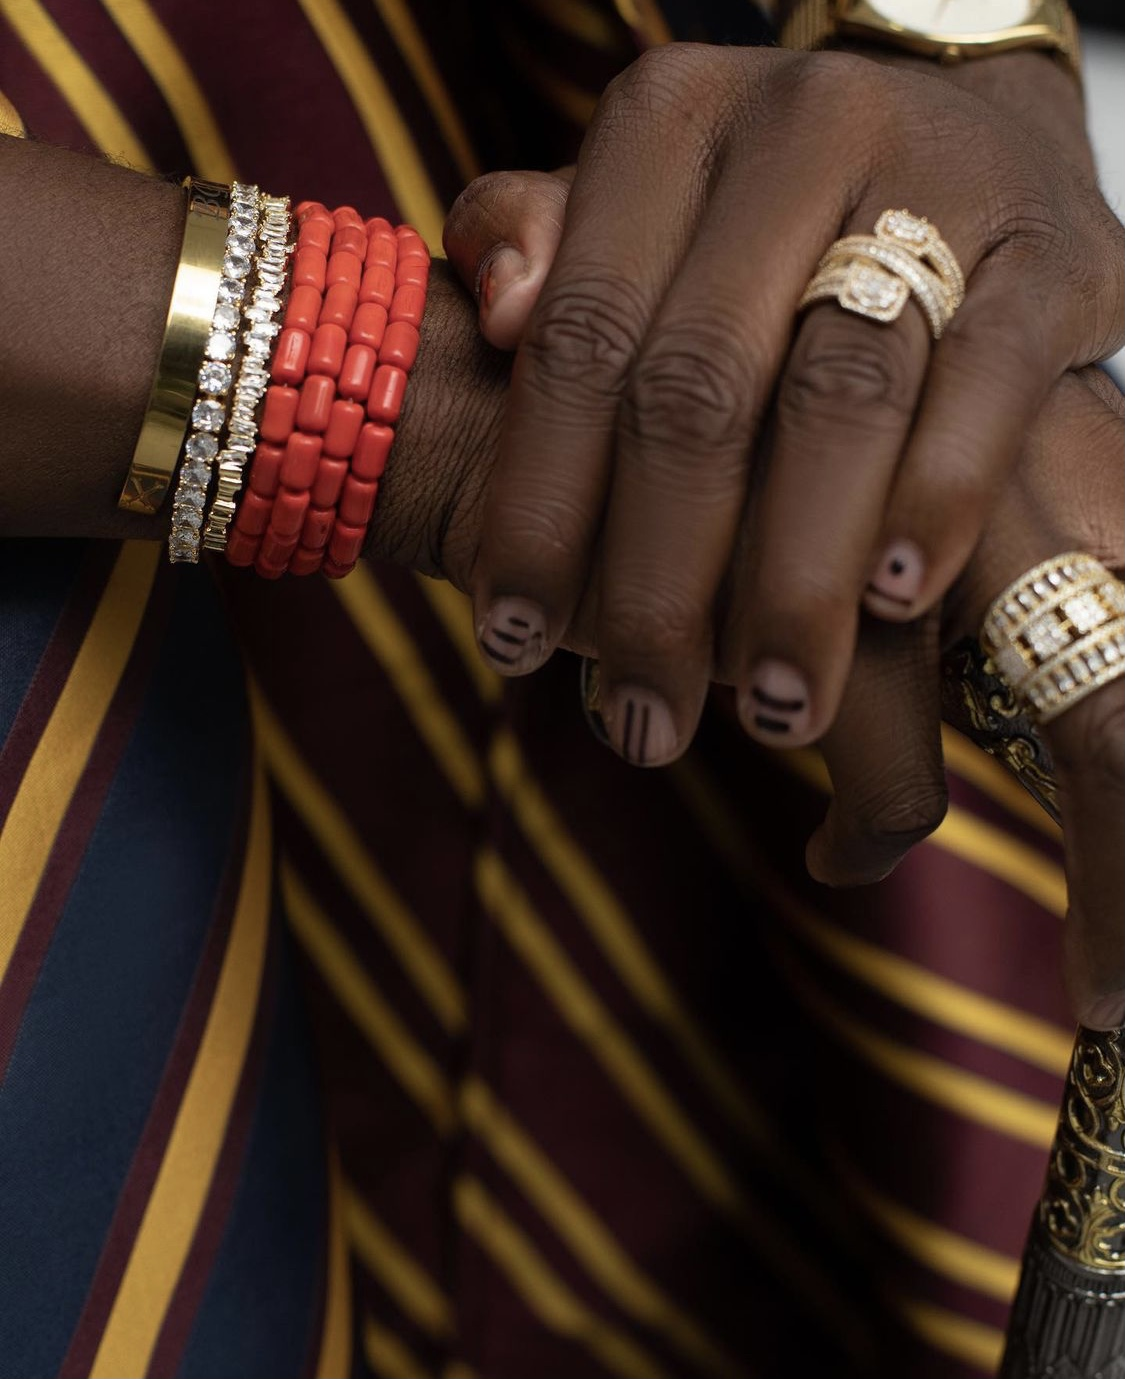 Nail Art: Riding with boys with coloured nails by Enioluwa Adeoluwa